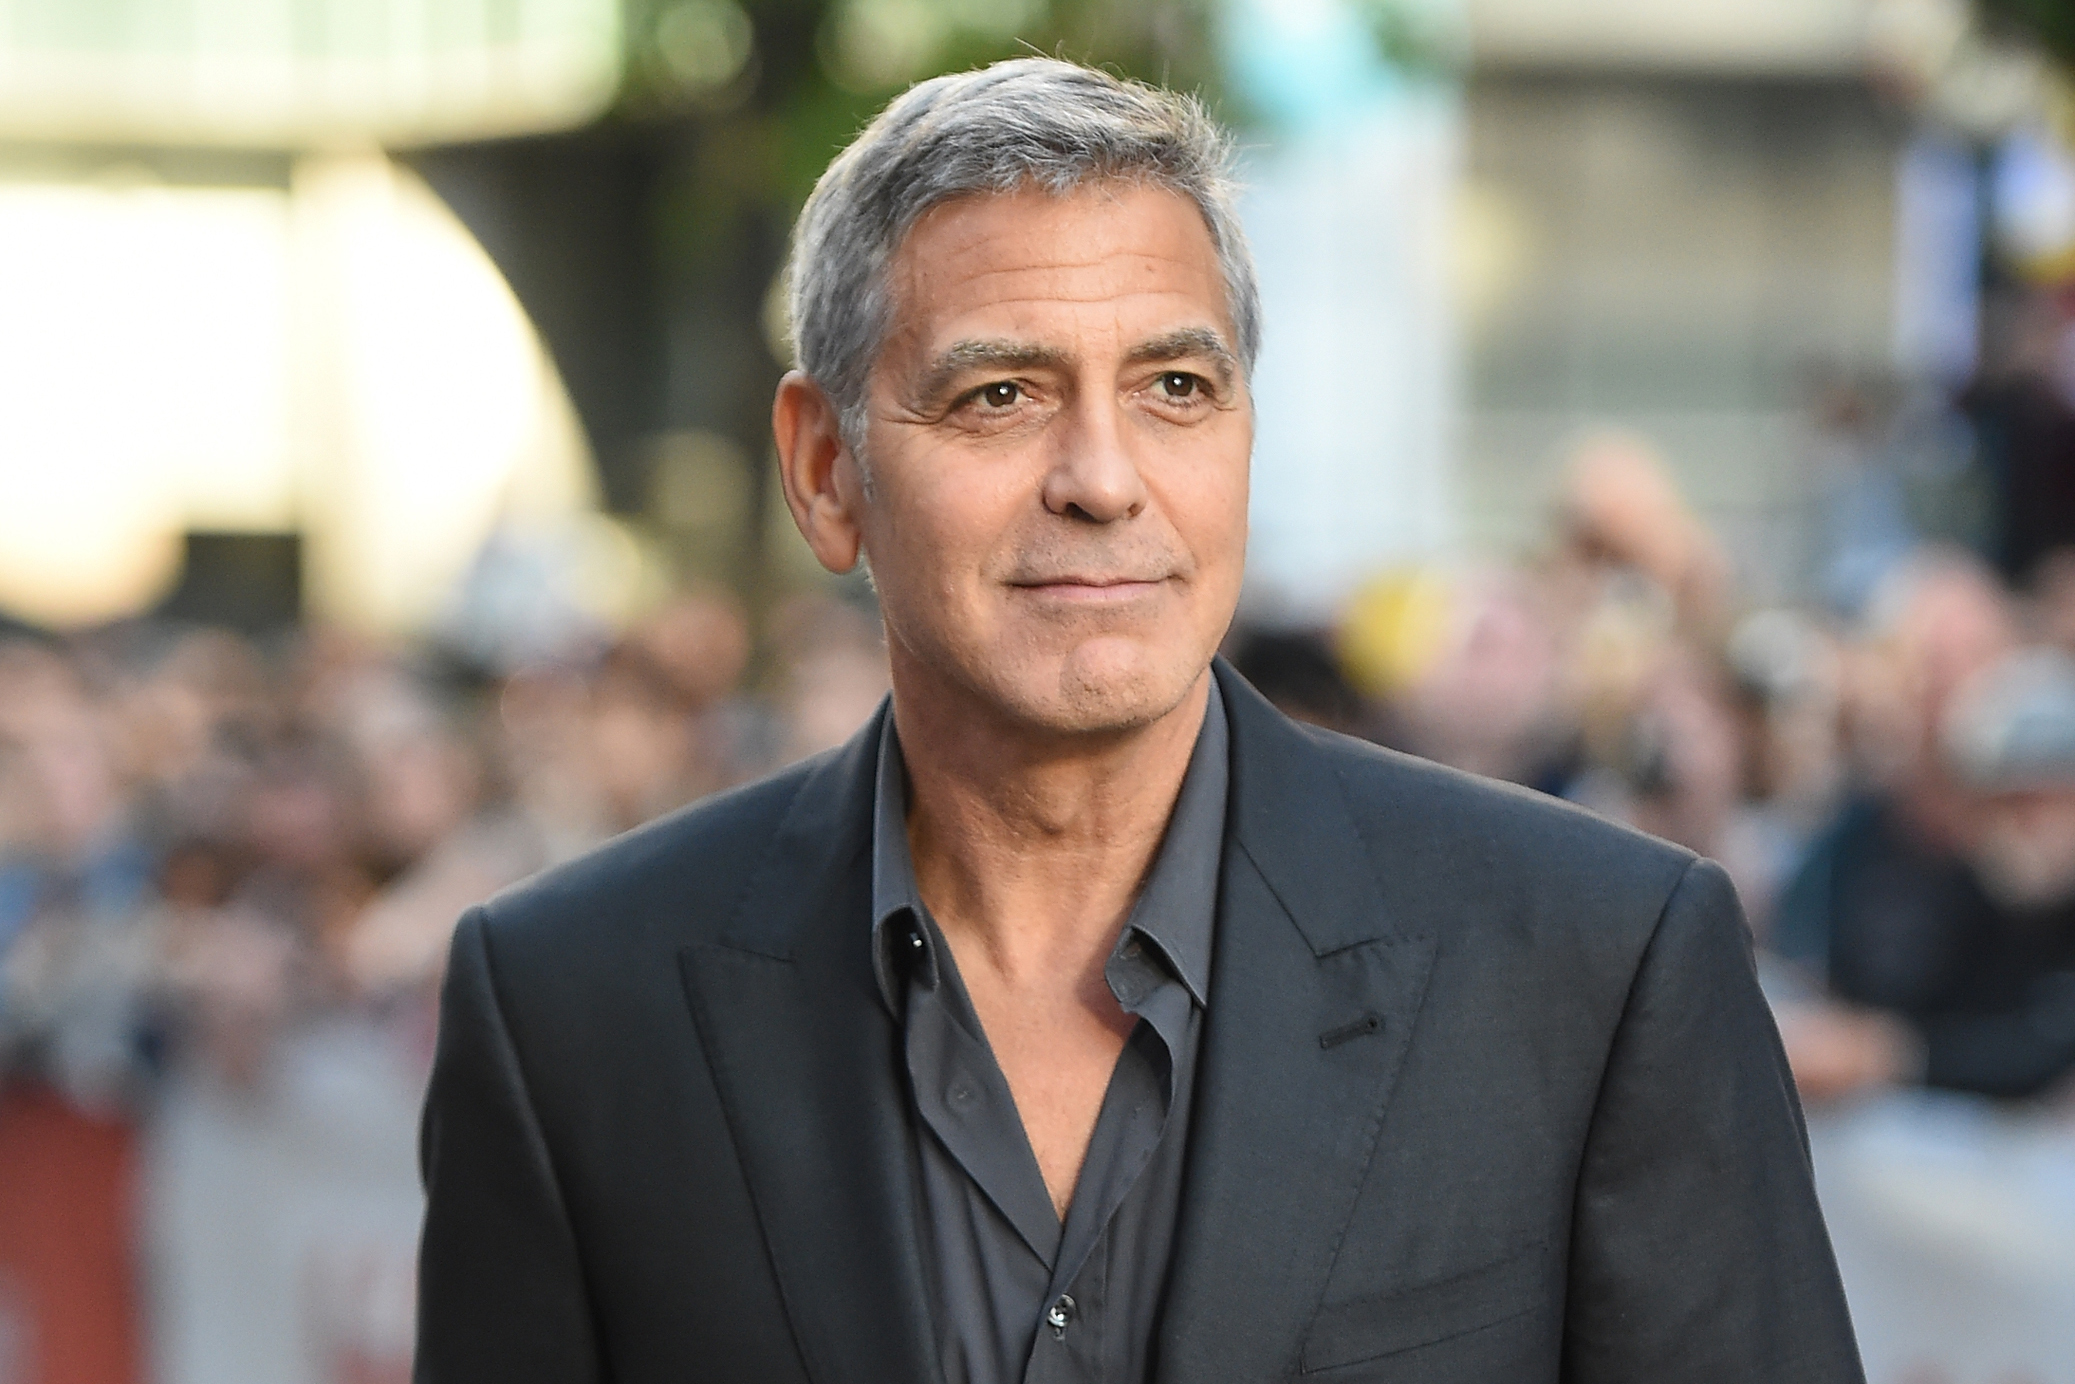 180117-celebrity-investments-george-clooney